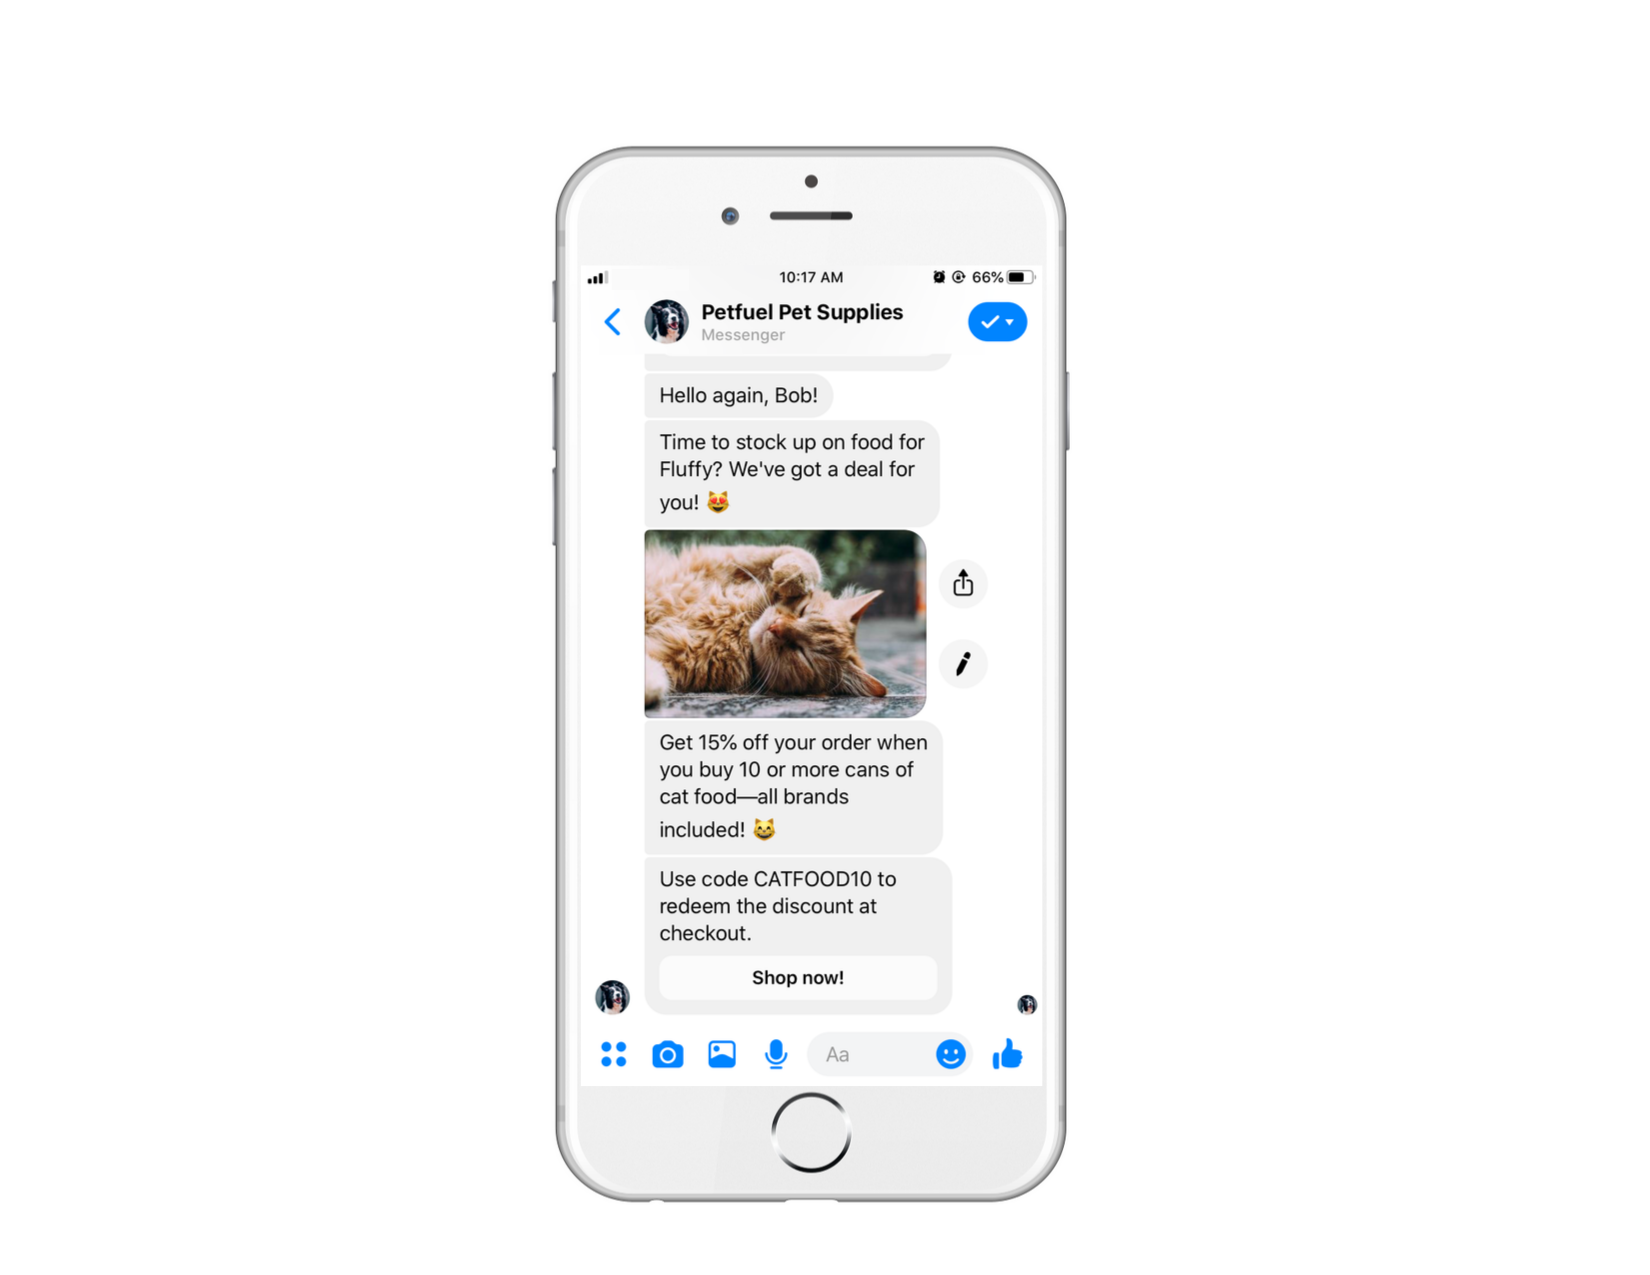 Volume discounts for customers within chatbots